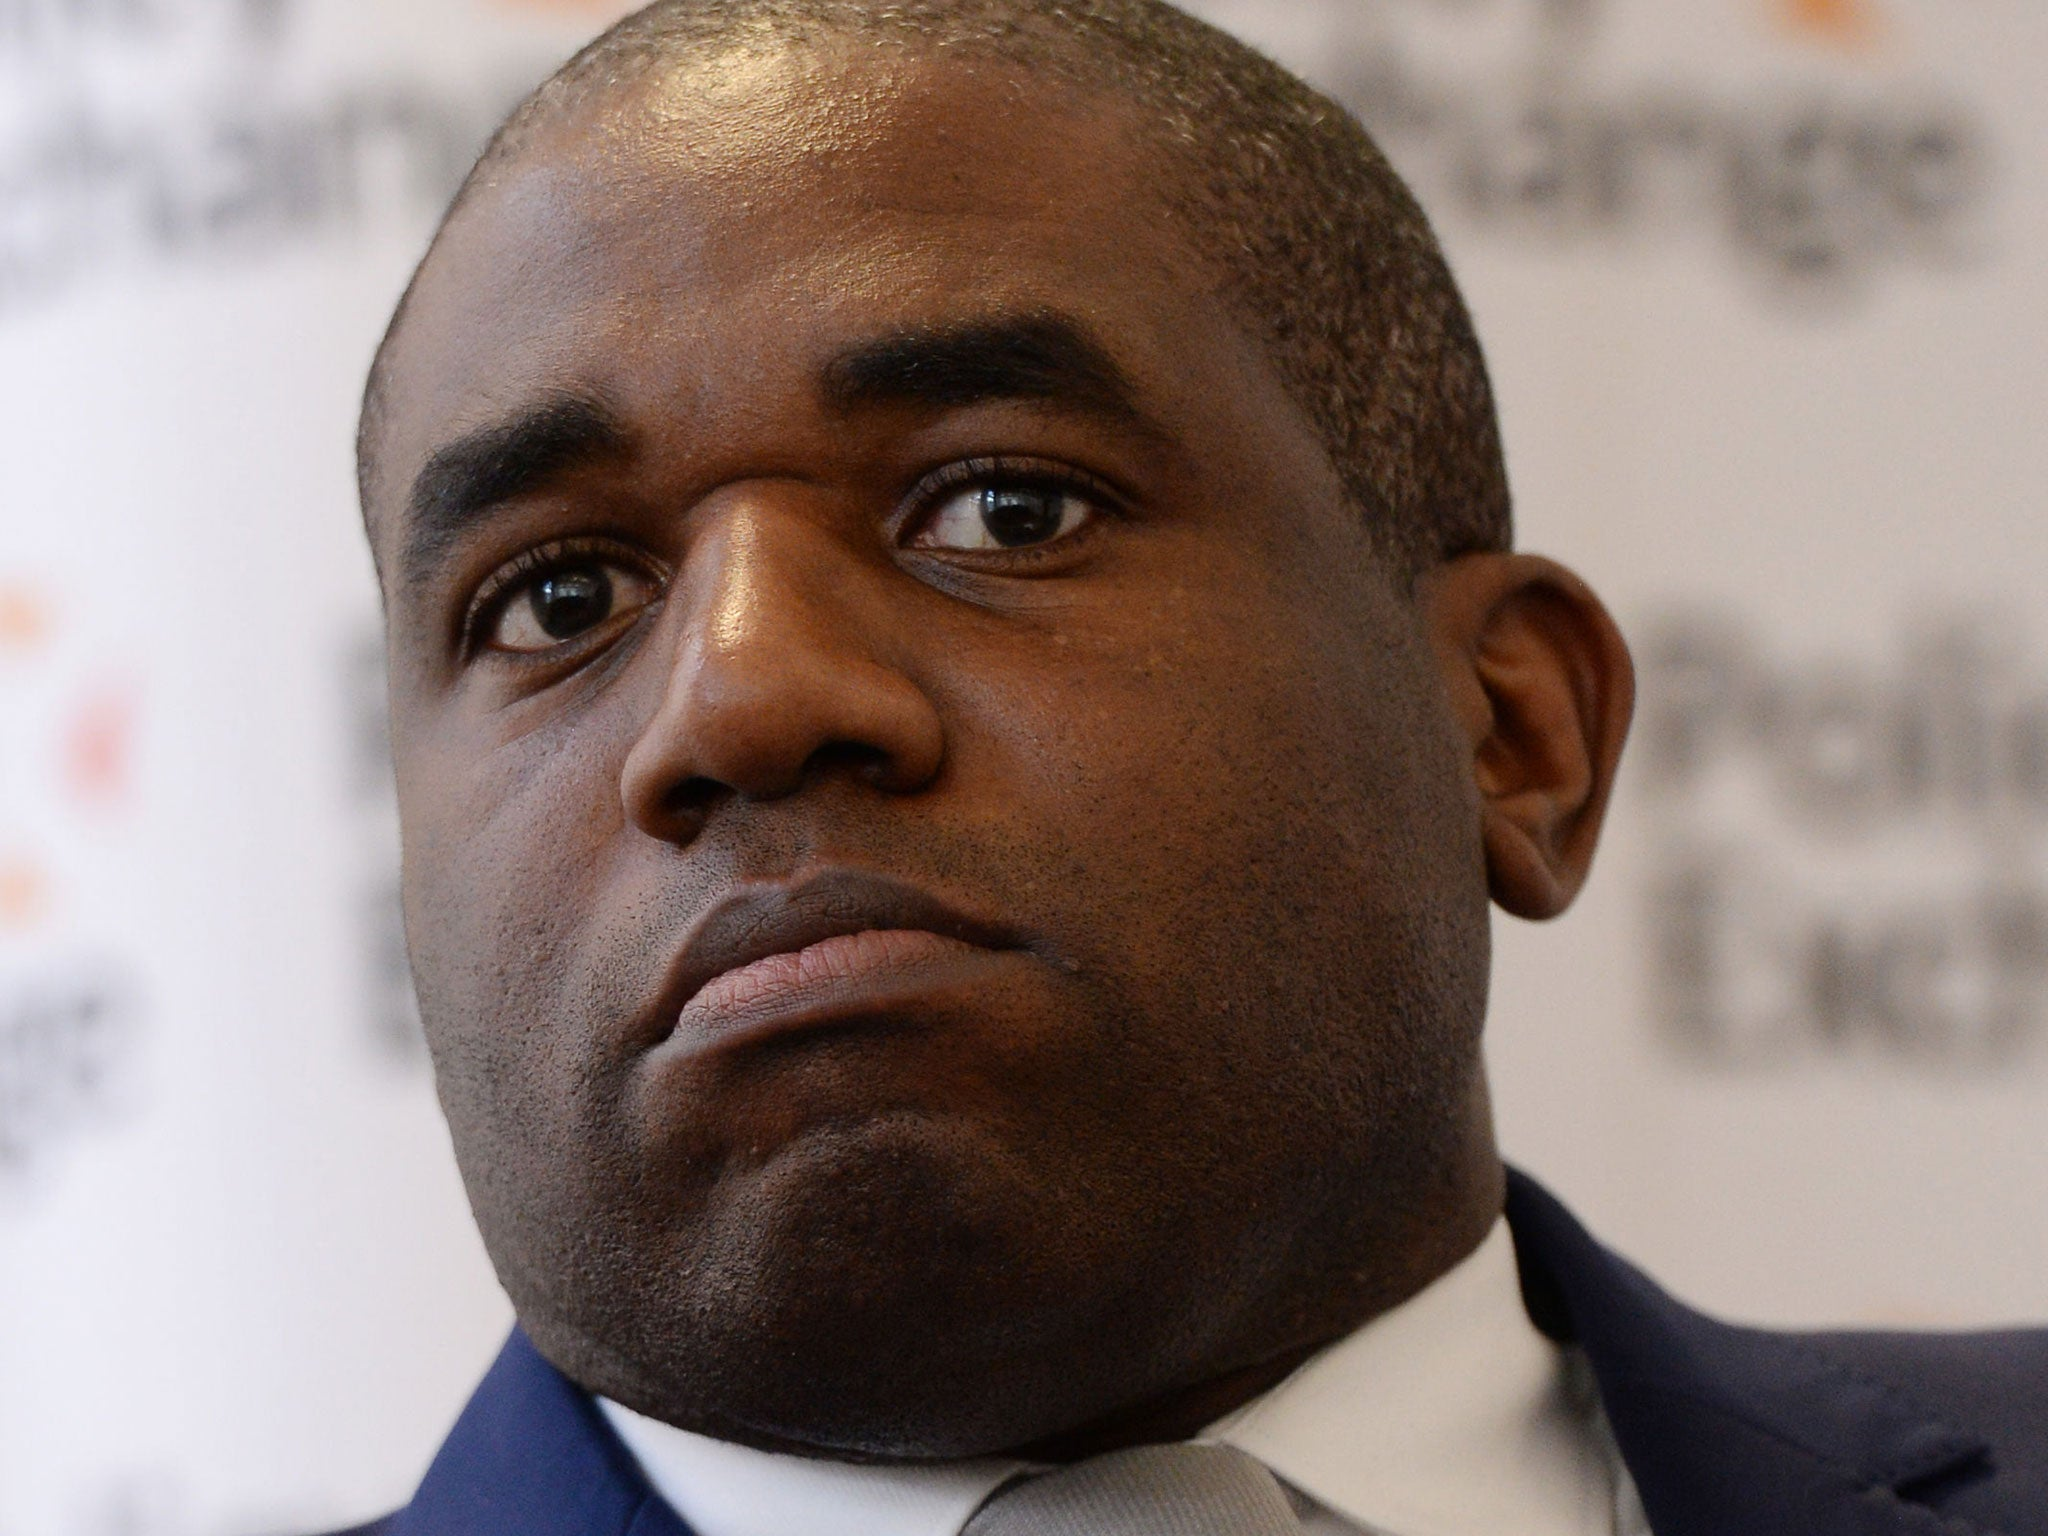 David Lammy suffers racist abuse after speaking out about Windrush scandal